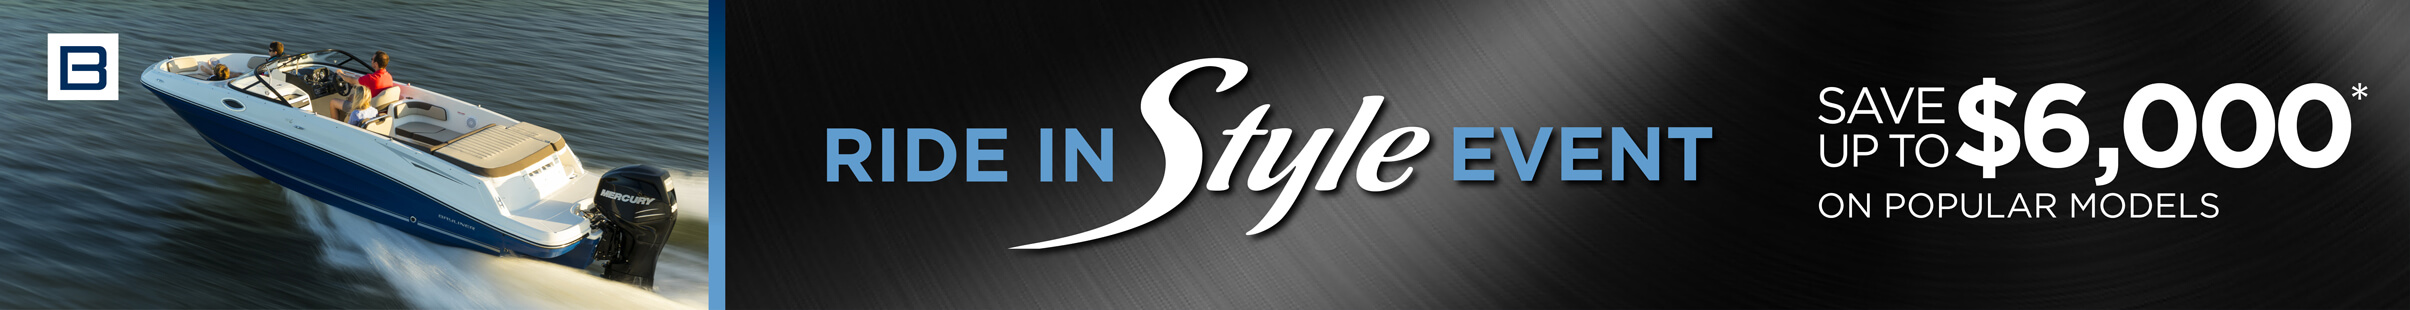 Ride in Style Event